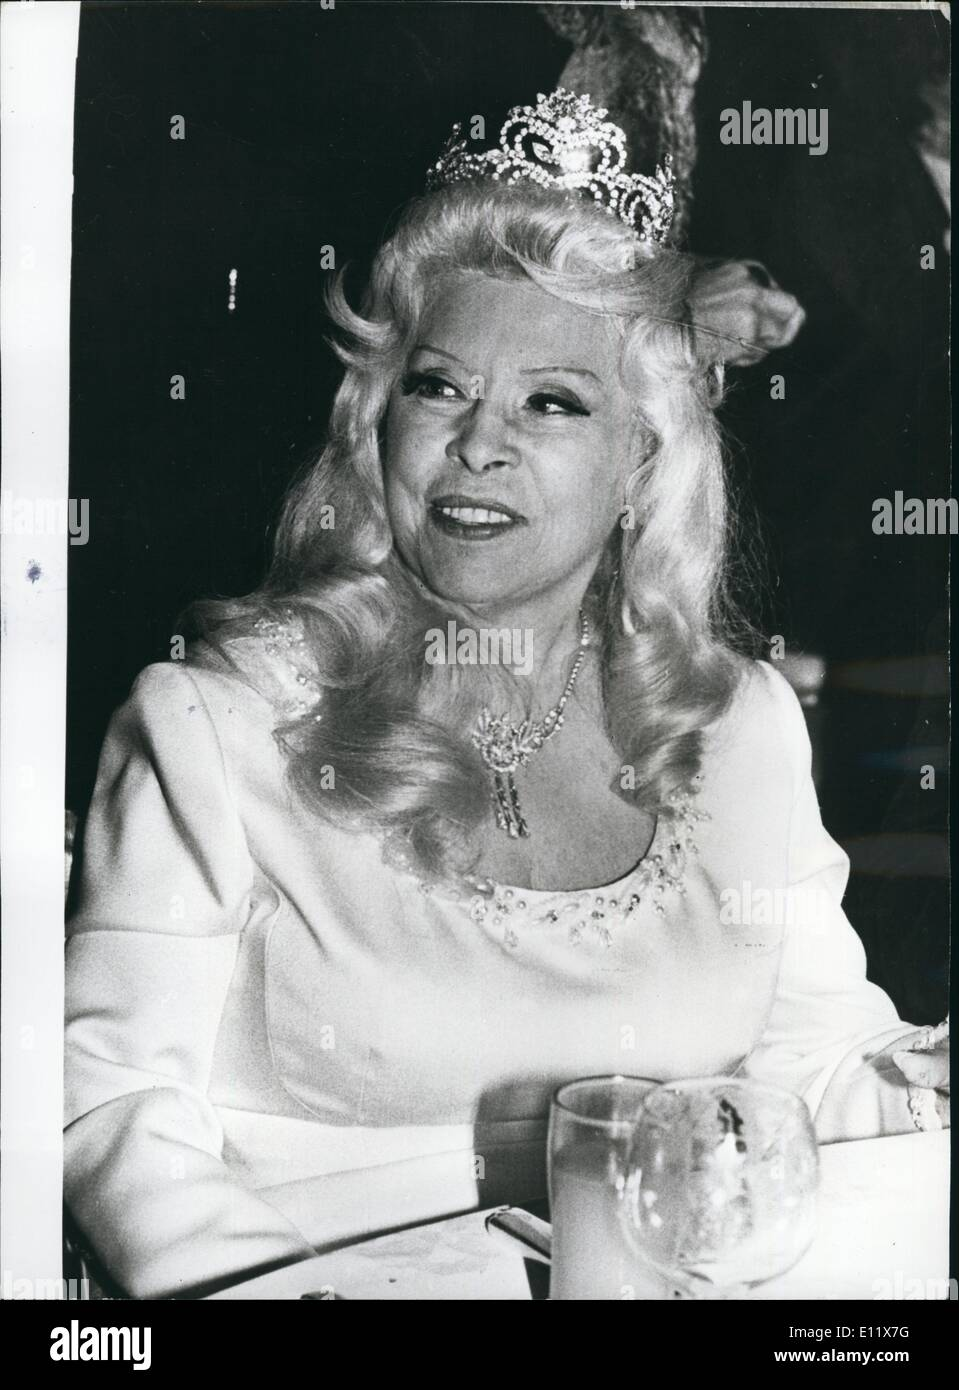 Oct. 10, 1980 - Mae West in Hospital: Veteran American screen goddess Mae West lies seriously ill in hospital in the US after suffering a stroke. The glamorous actress, now aged 88, is famous for her witticisms such as ''Come up and see me sometime''. Photo Shows In 1978, aged 86, still glamorous Mae West attends a film premiere in Los Angeles. - Stock Image